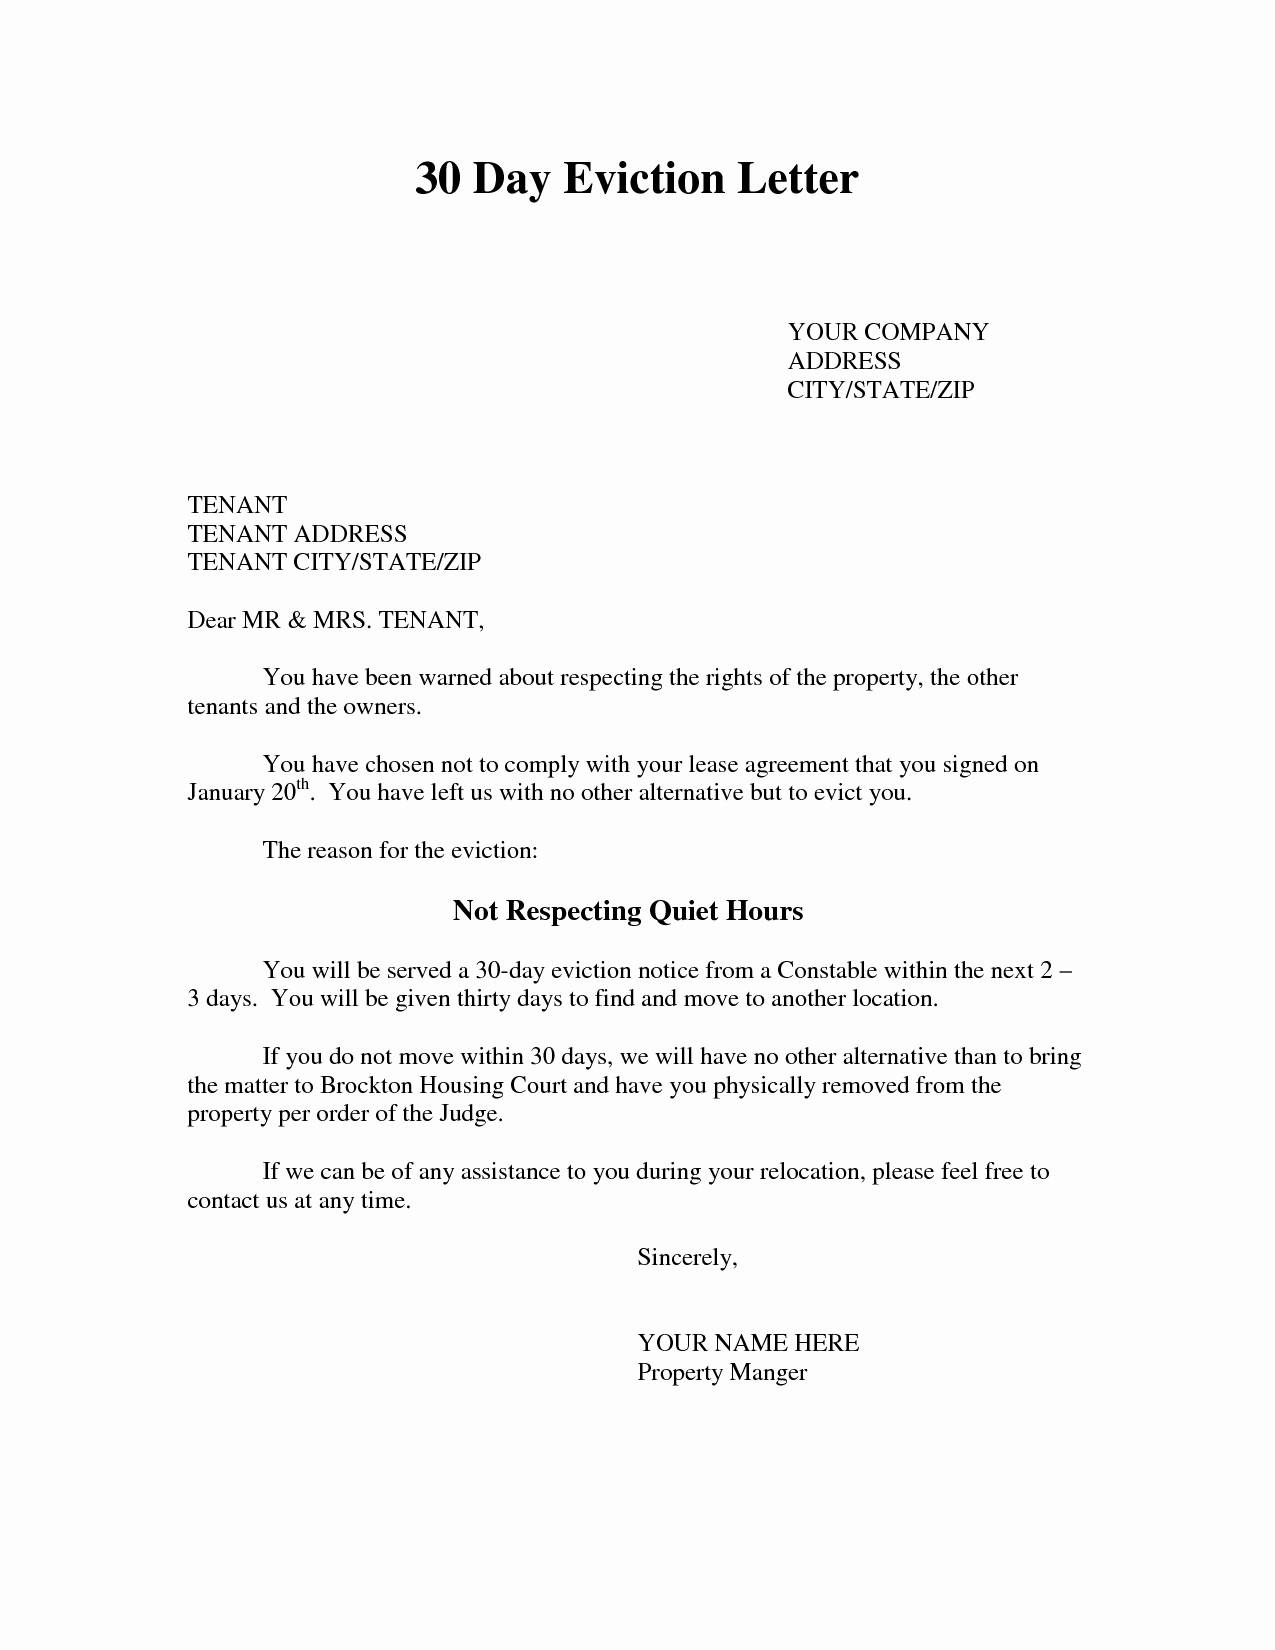 Eviction Letter Template Free - Tenant Eviction Letter Template Fresh Eviction Notice Template